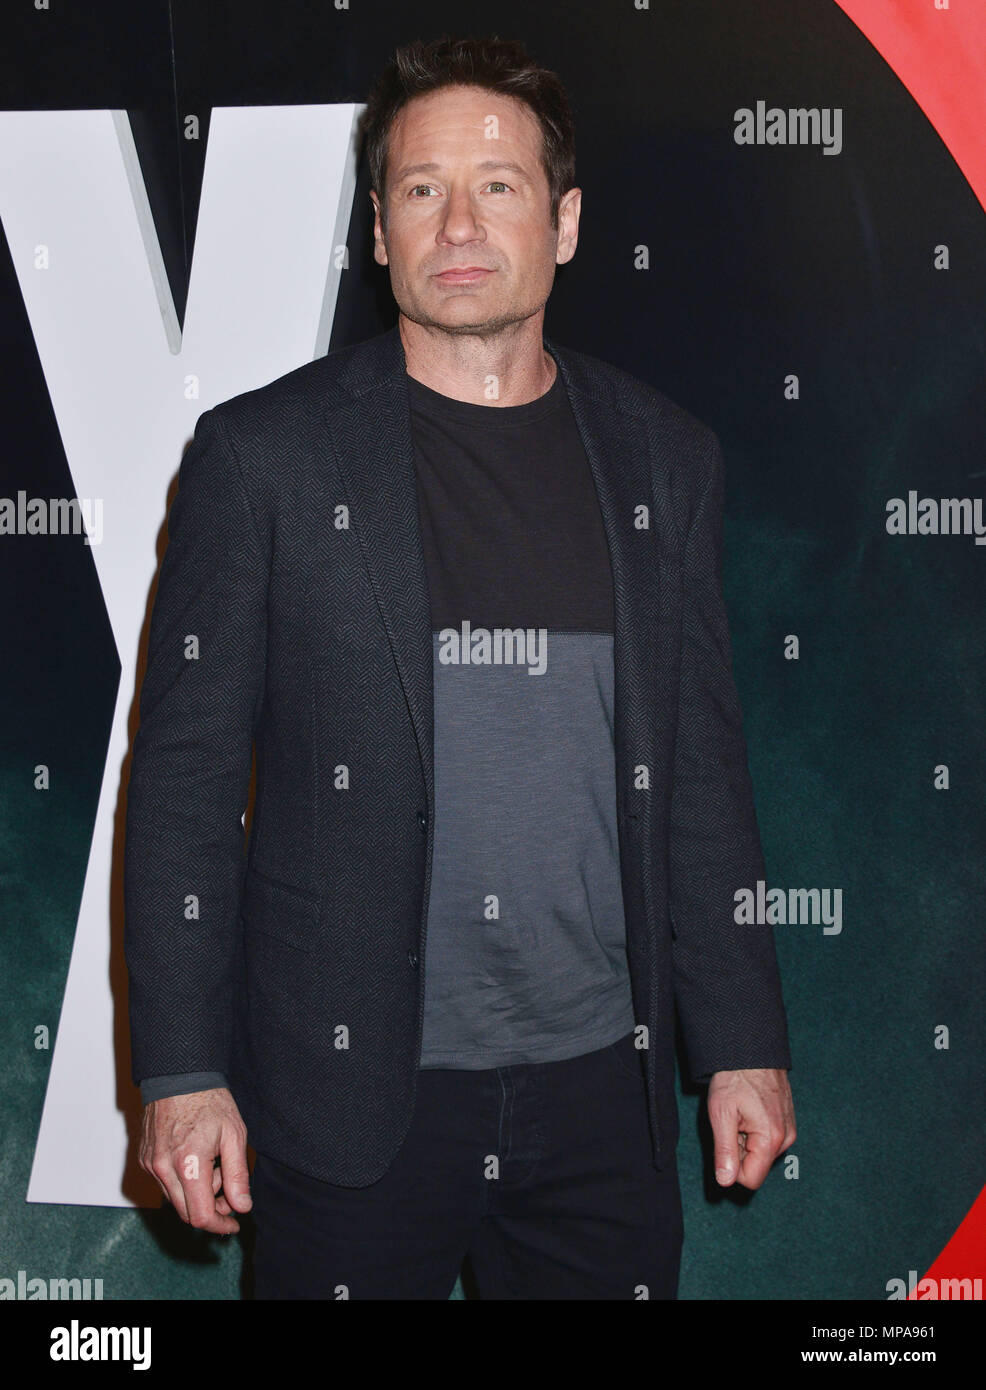 David Duchovny 025  at The X-Files Premiere at California Science Center in Los Angeles, CA  January 12, 2016.David Duchovny 025 ------------- Red Carpet Event, Vertical, USA, Film Industry, Celebrities,  Photography, Bestof, Arts Culture and Entertainment, Topix Celebrities fashion /  Vertical, Best of, Event in Hollywood Life - California,  Red Carpet and backstage, USA, Film Industry, Celebrities,  movie celebrities, TV celebrities, Music celebrities, Photography, Bestof, Arts Culture and Entertainment,  Topix, Three Quarters, vertical, one person,, from the year , 2016, inquiry tsuni@Gamma - Stock Image